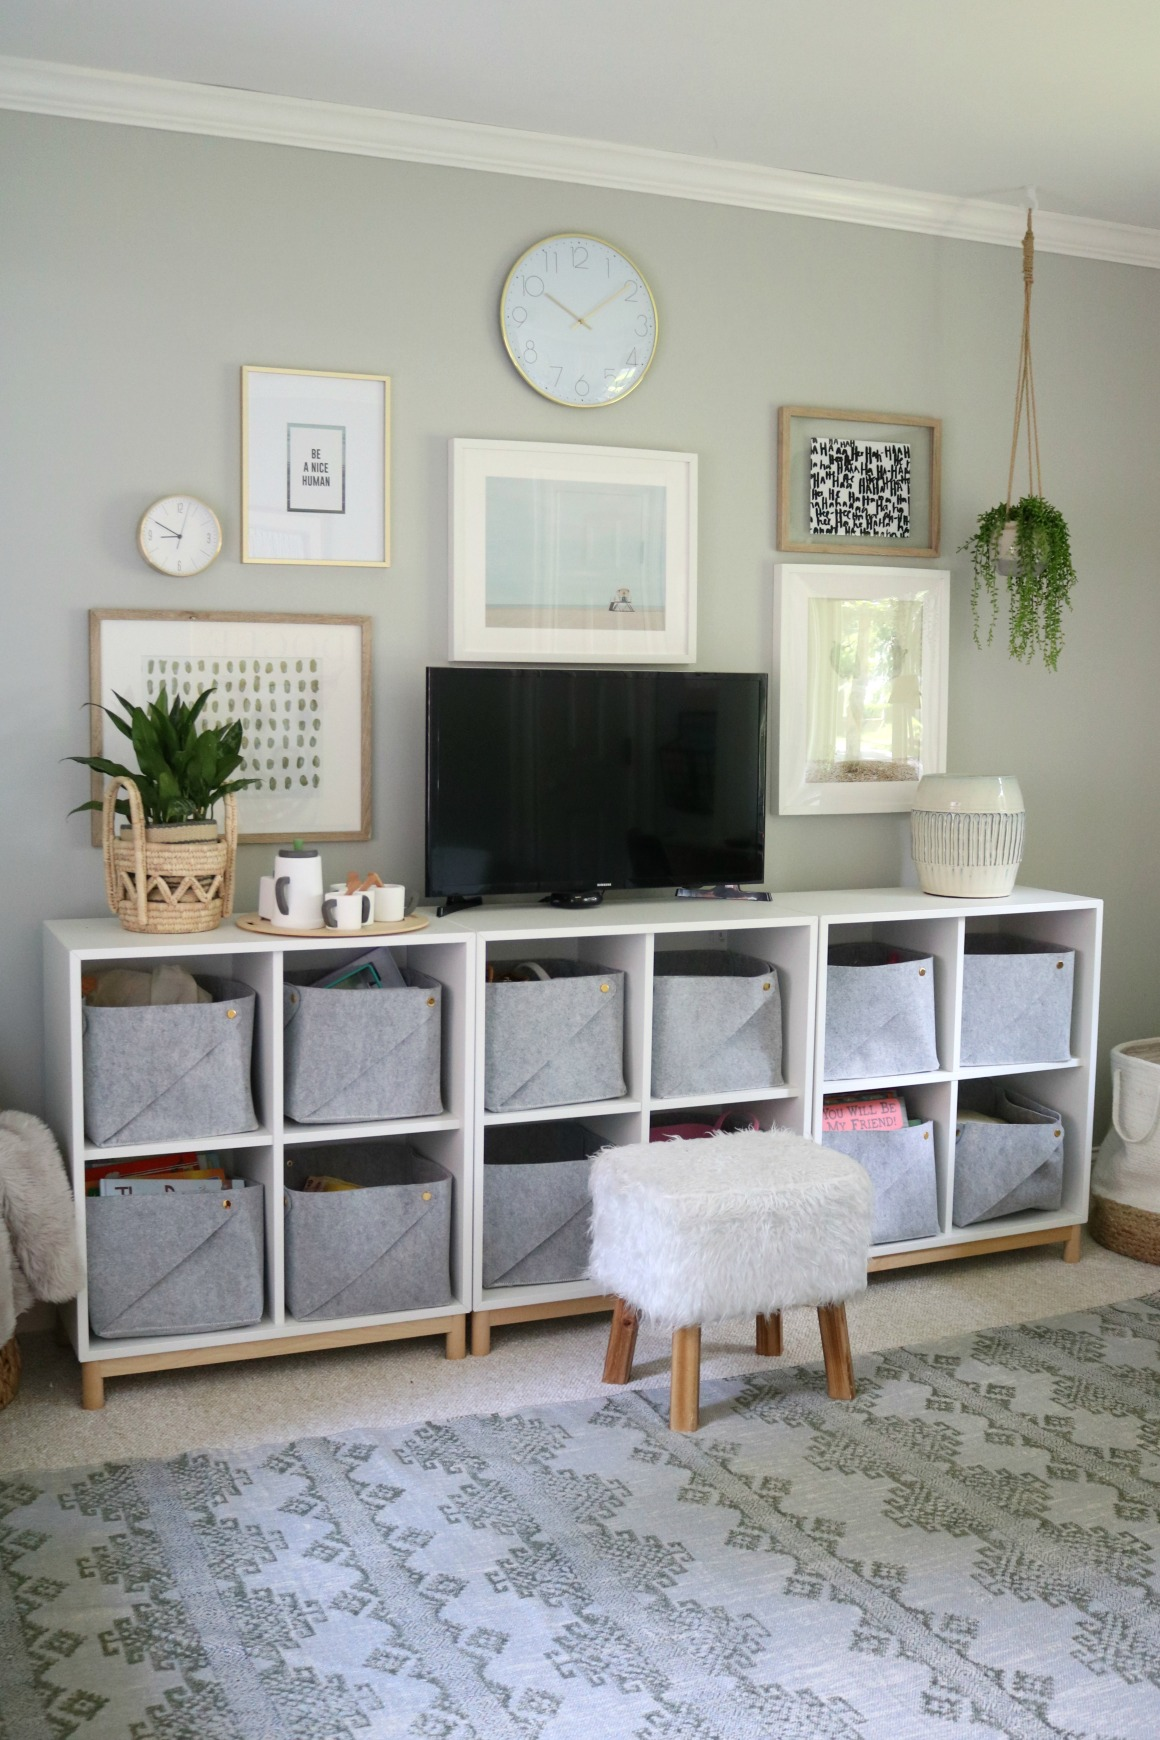 House Built By Thrifted Decor And Five Tips For Thrifting Nesting